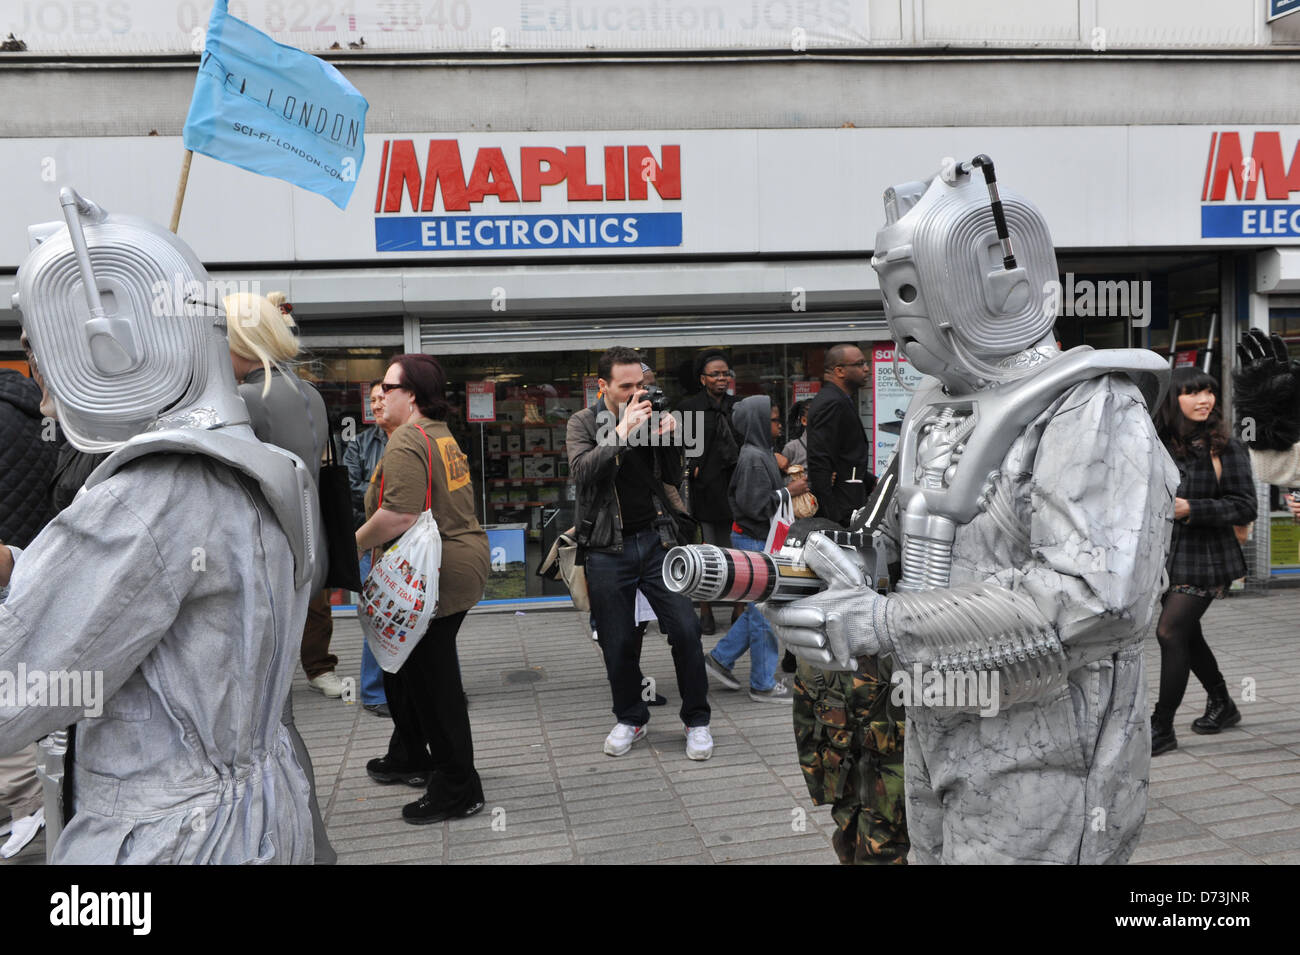 Cosplay cosplayers dressing up Stratford, London, UK. 28th April 2013. Cyberman pass Maplin Electronics at the costume - Stock Image